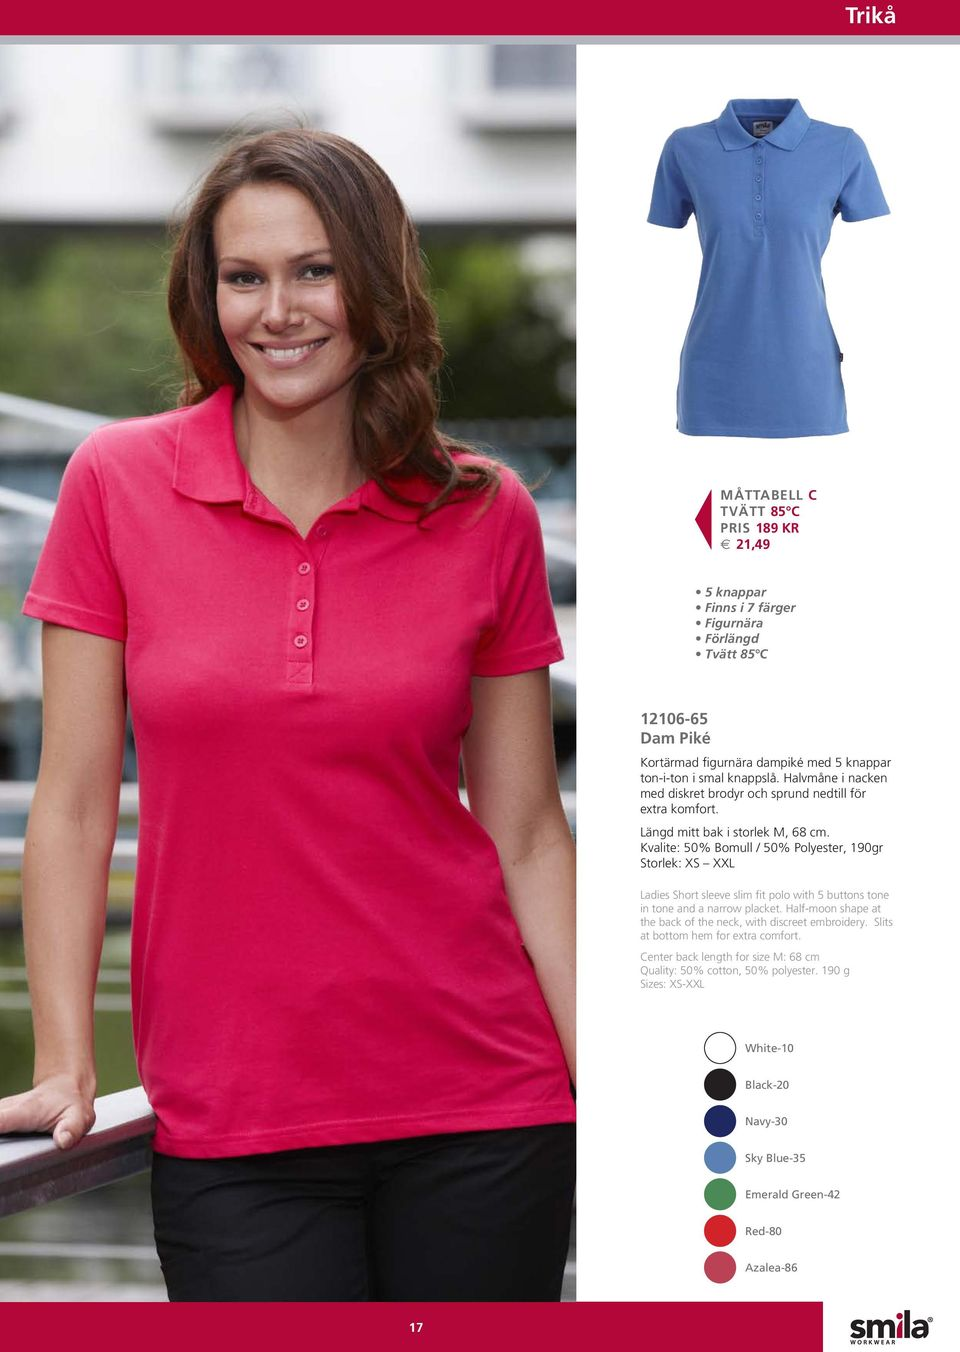 Kvalite: 50% Bomull / 50% Polyester, 190gr Storlek: XS XXL Ladies Short sleeve slim fit polo with 5 buttons tone in tone and a narrow placket.